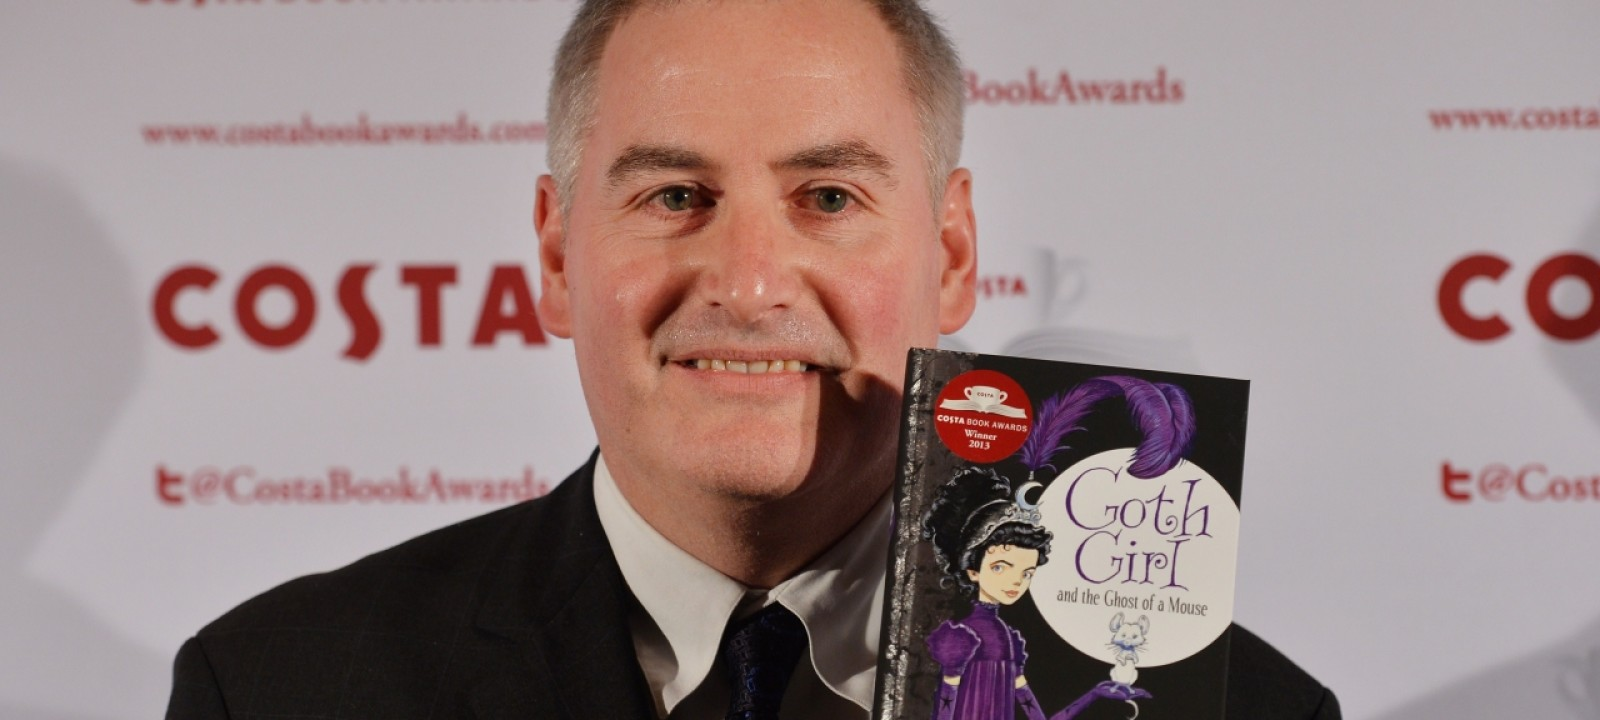 ChrisRiddell